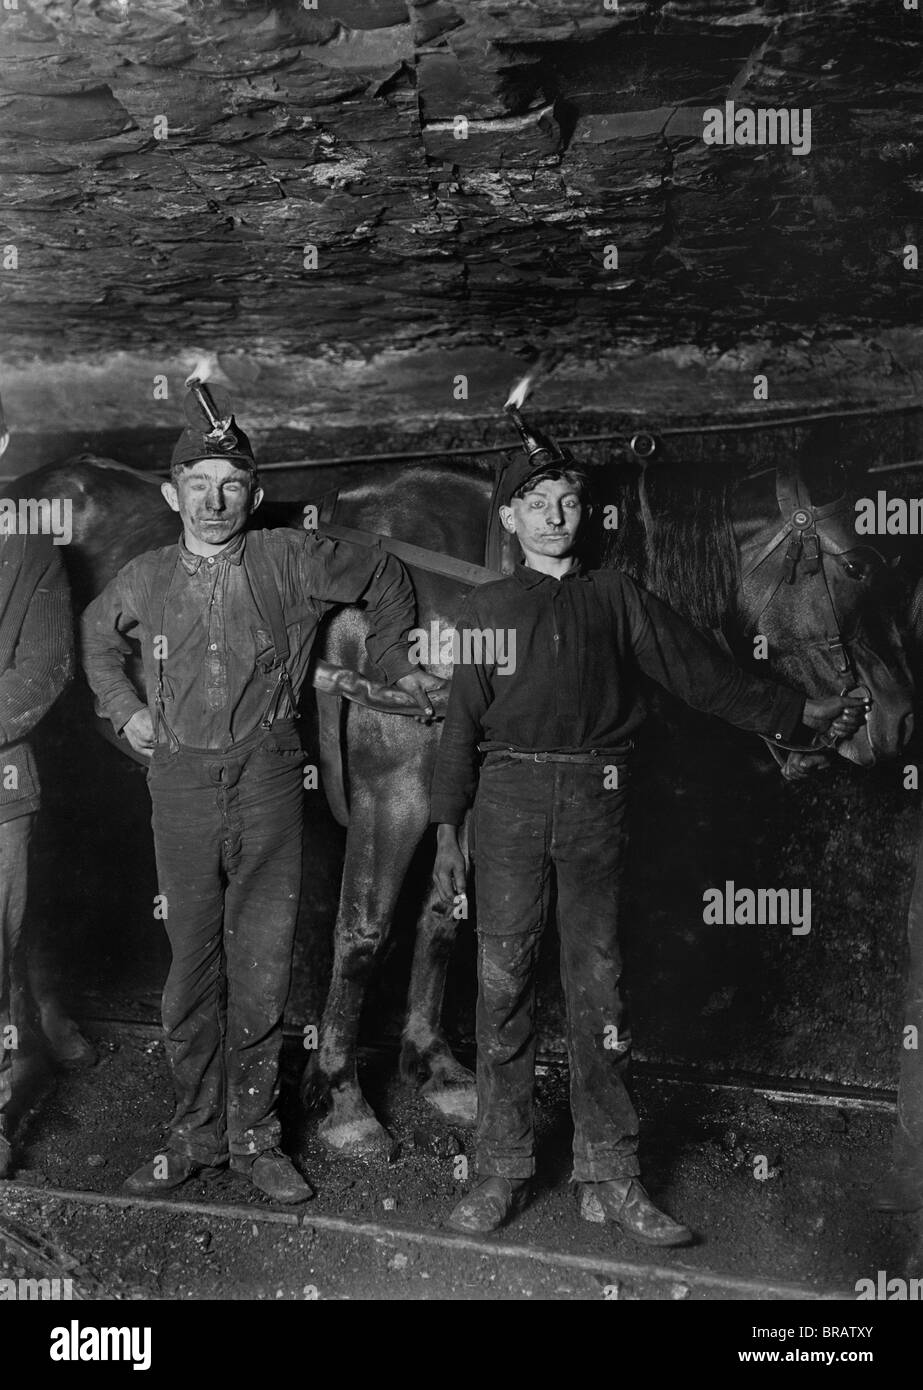 Vintage photo c1908 by Lewis Wickes Hine of boys working in a coal mine in West Virginia, USA. - Stock Image